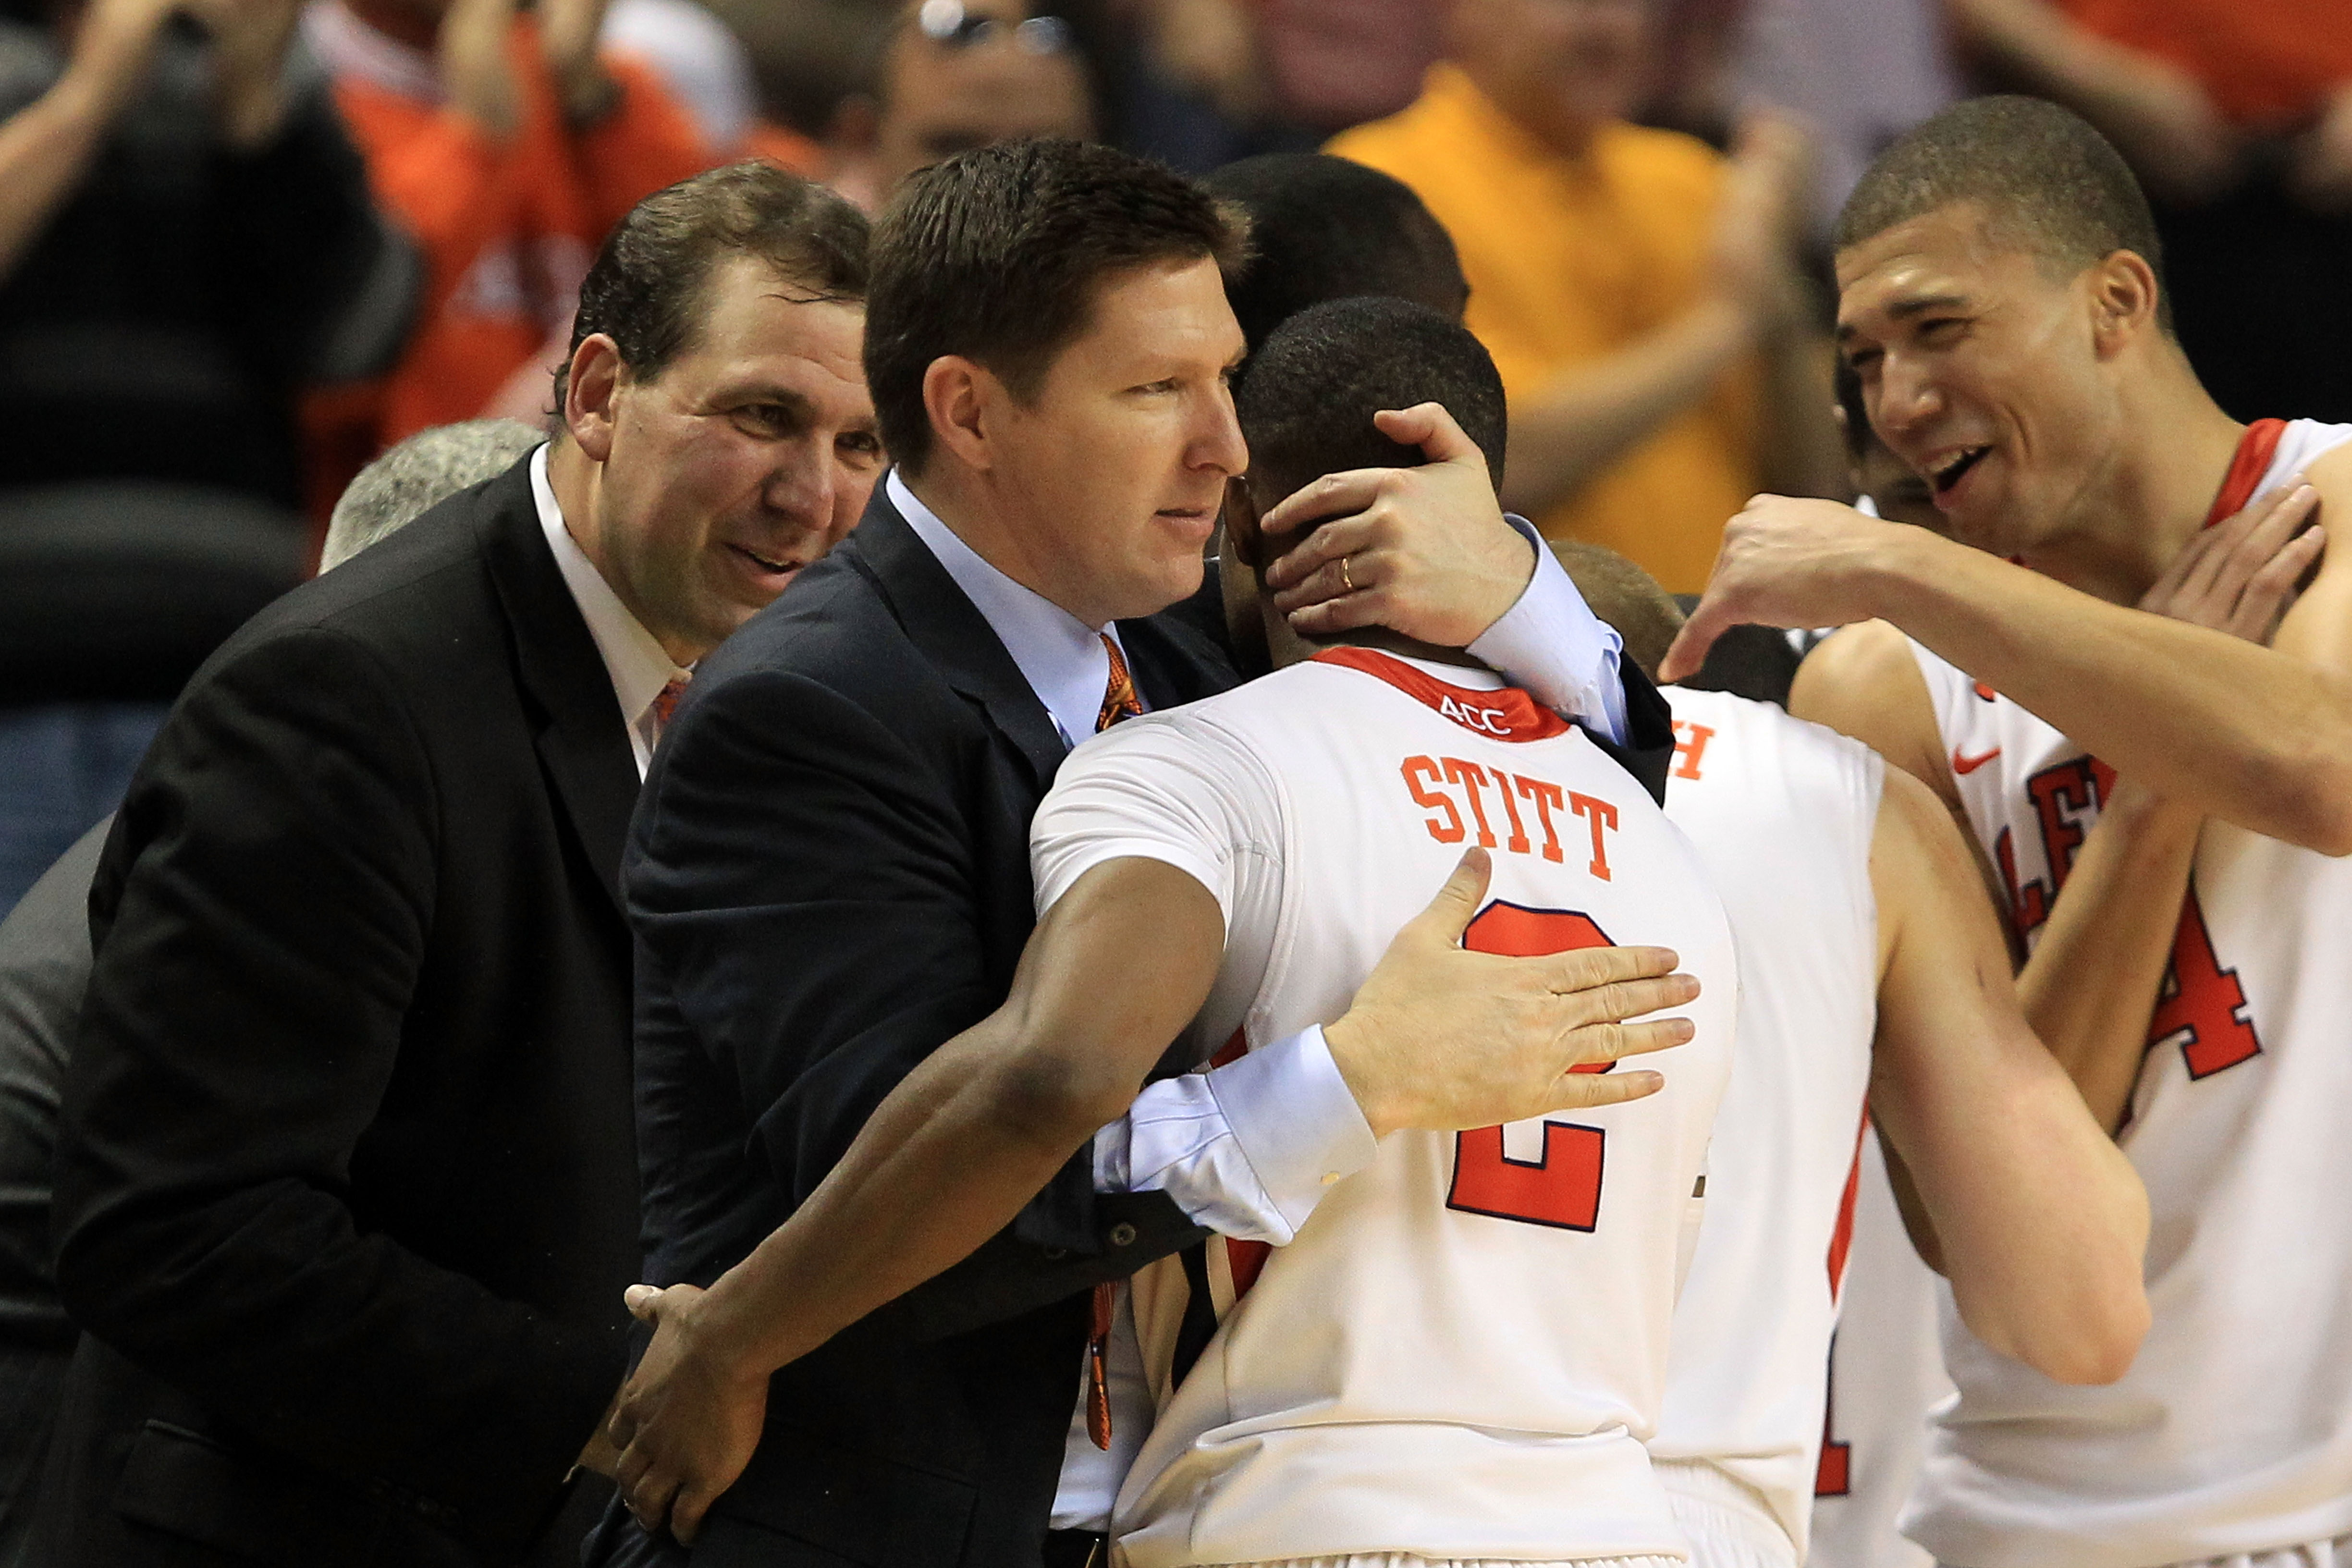 GREENSBORO, NC - MARCH 11:  Head coach Brad Brownell of the Clemson Tigers hugs player Demontez Stitt #2 after their 70-47 victory over the Boston College Eagles during the second half in the quarterfinals of the 2011 ACC men's basketball tournament at th